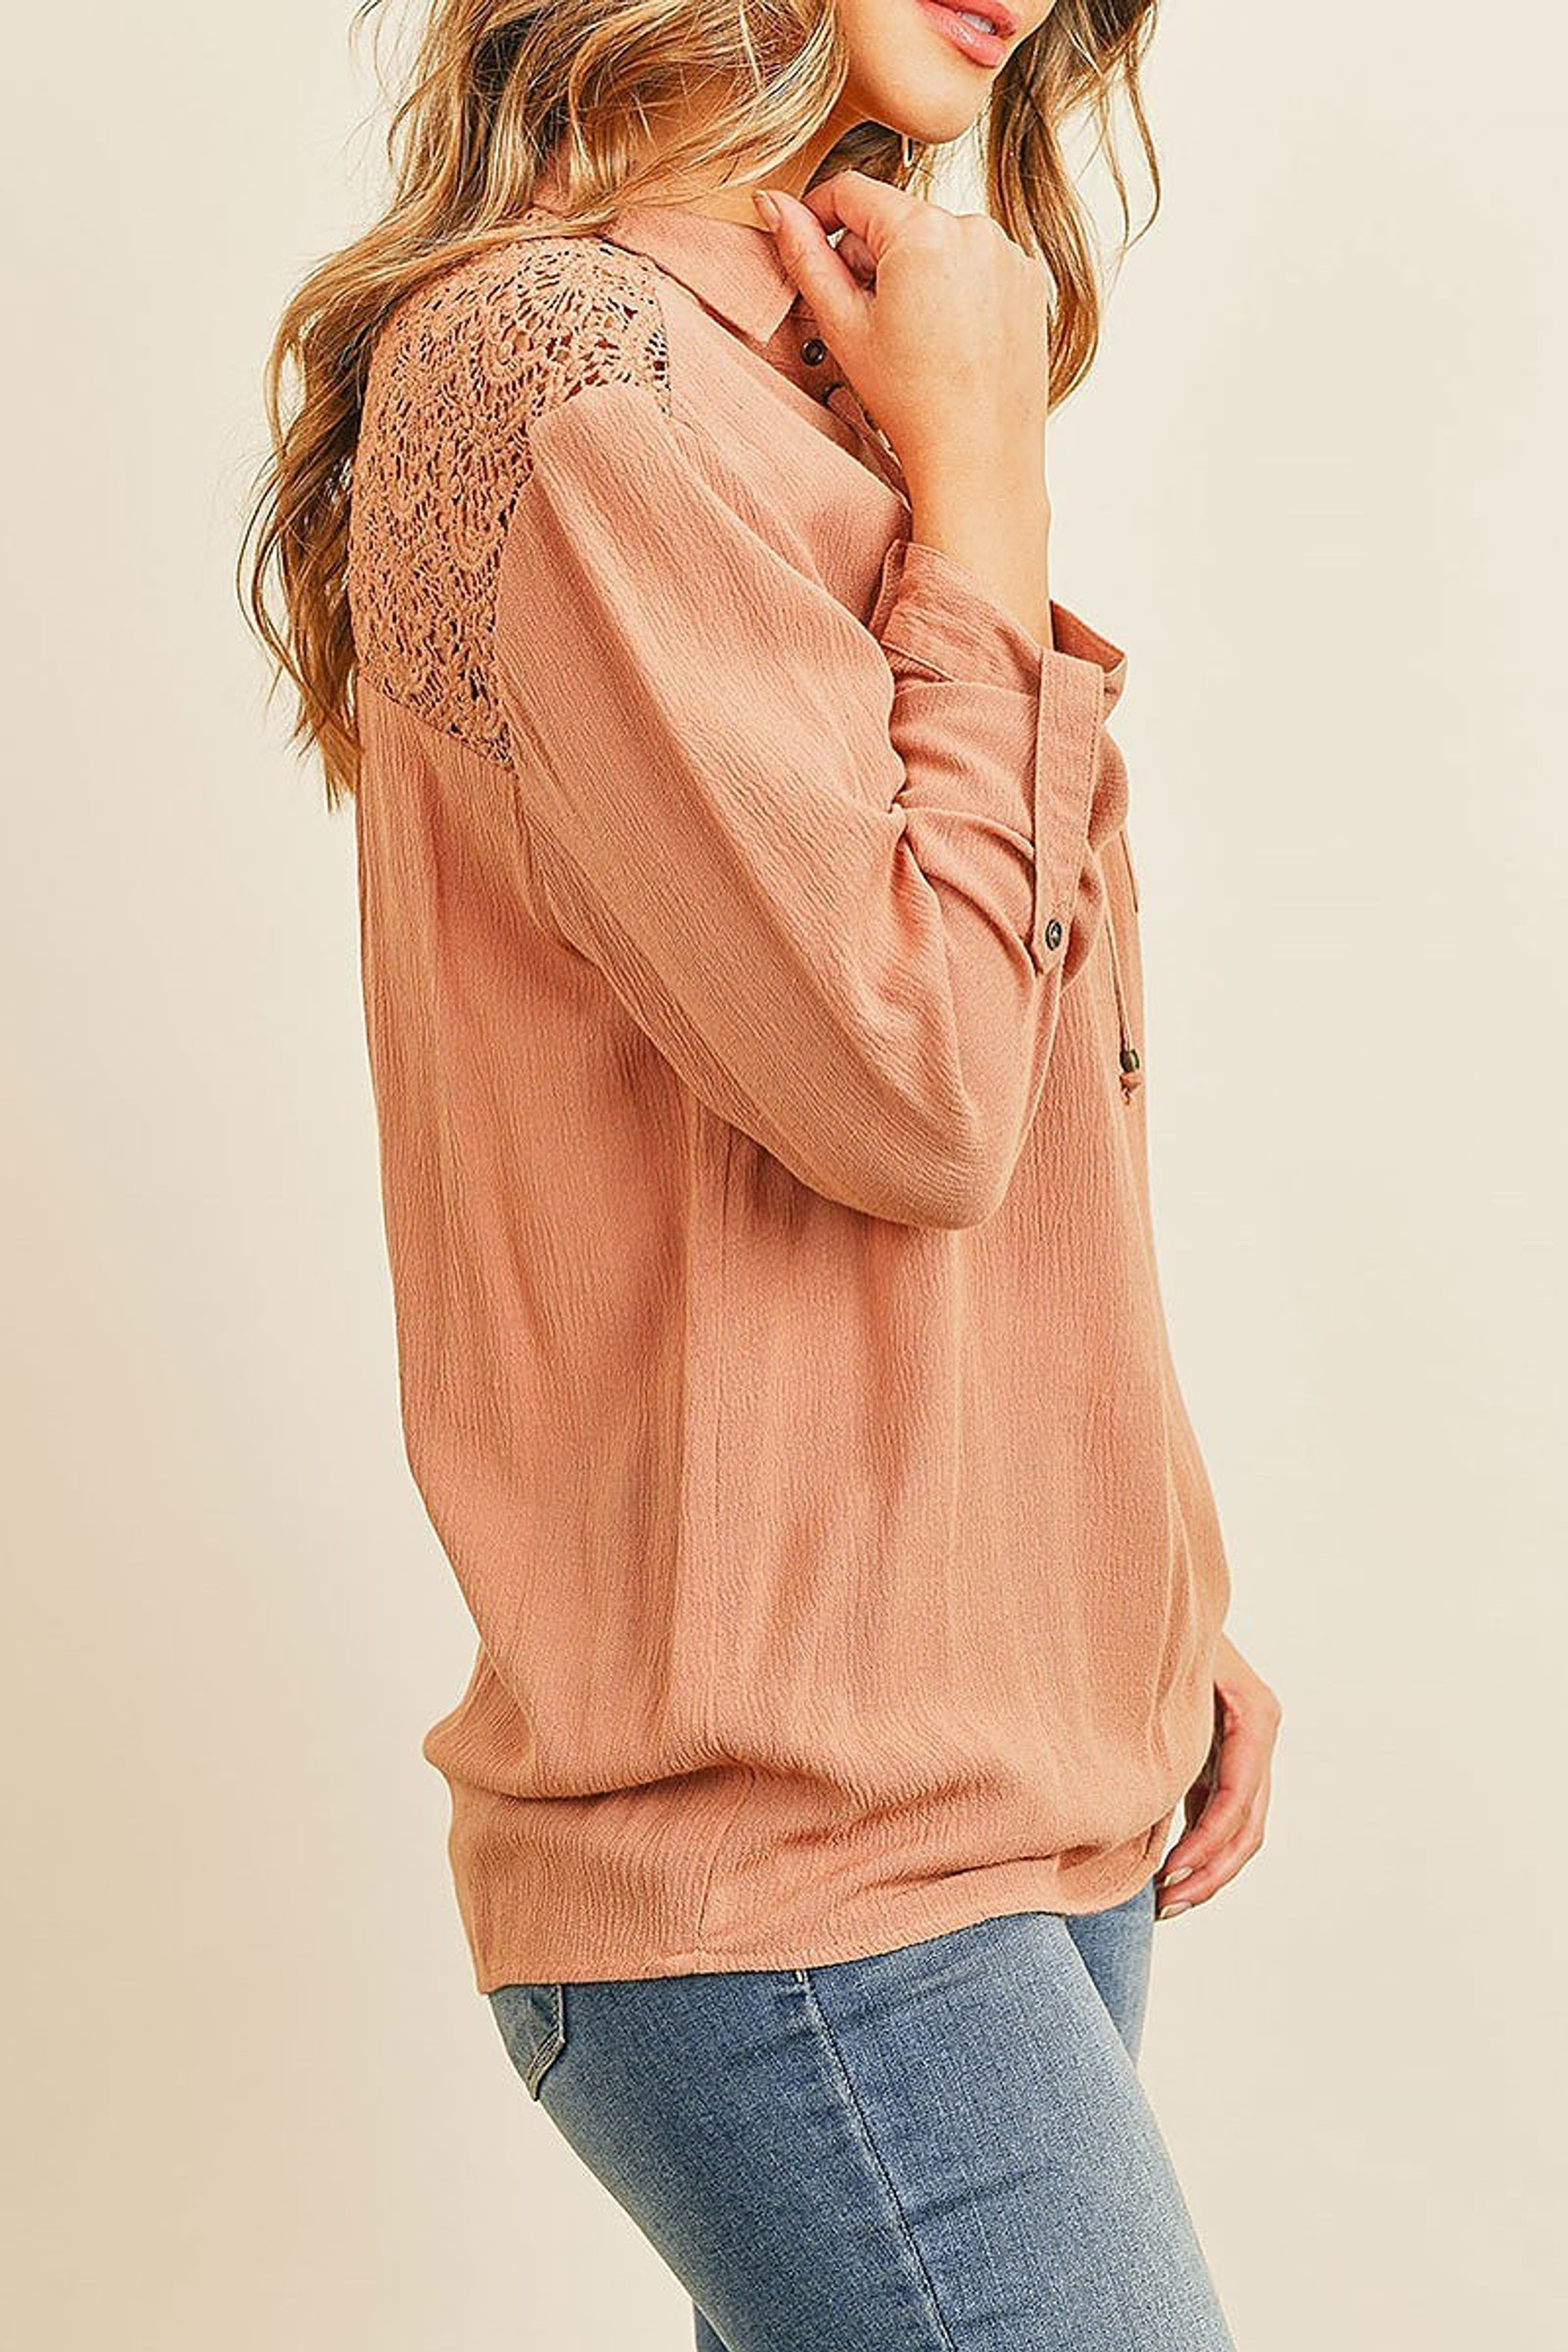 Crochet Back Accent Lace Up V Neck Collared Long Sleeve Top with Front Pockets